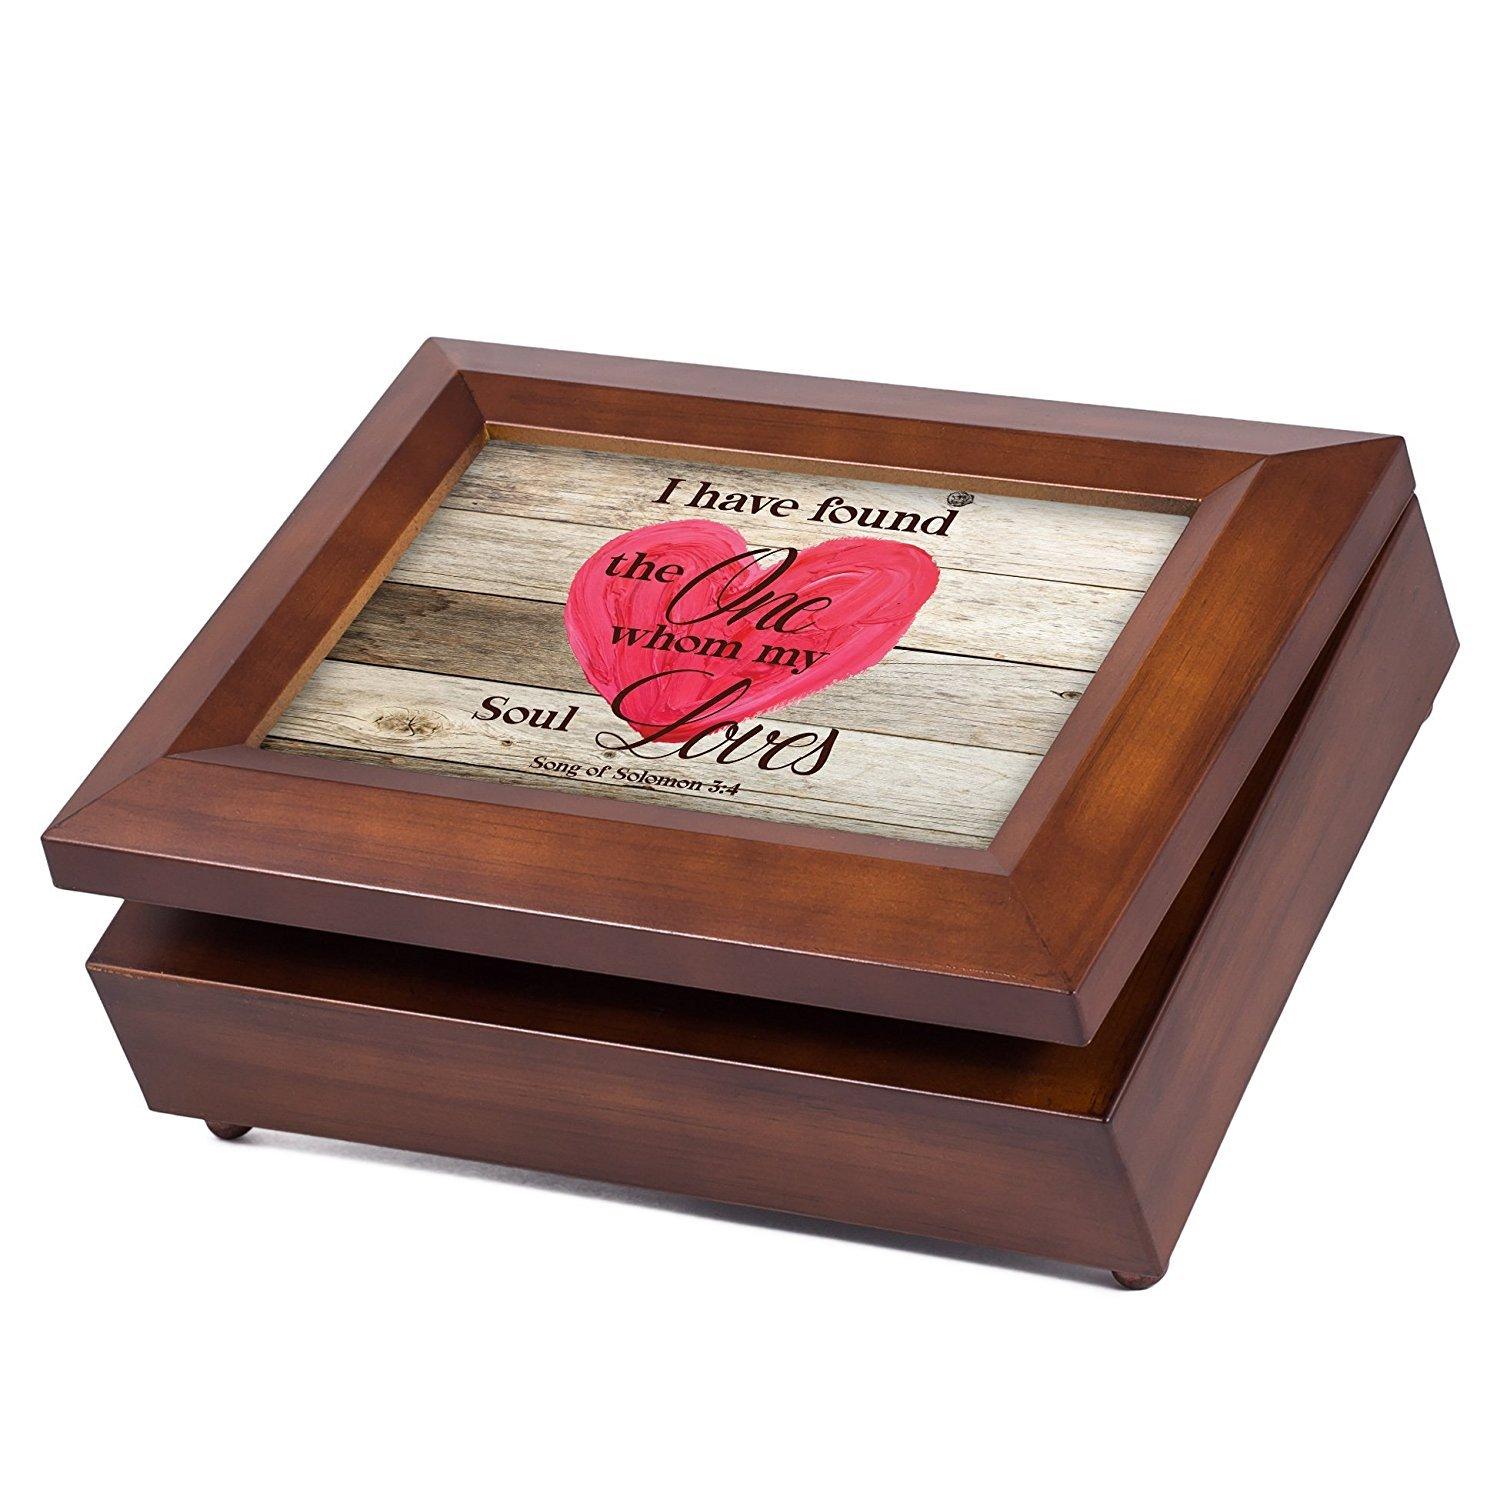 My Soul Loves Heart Song of Solomon 3:4 Wood Finish Jewelry Music Box Plays You are My Sunshine